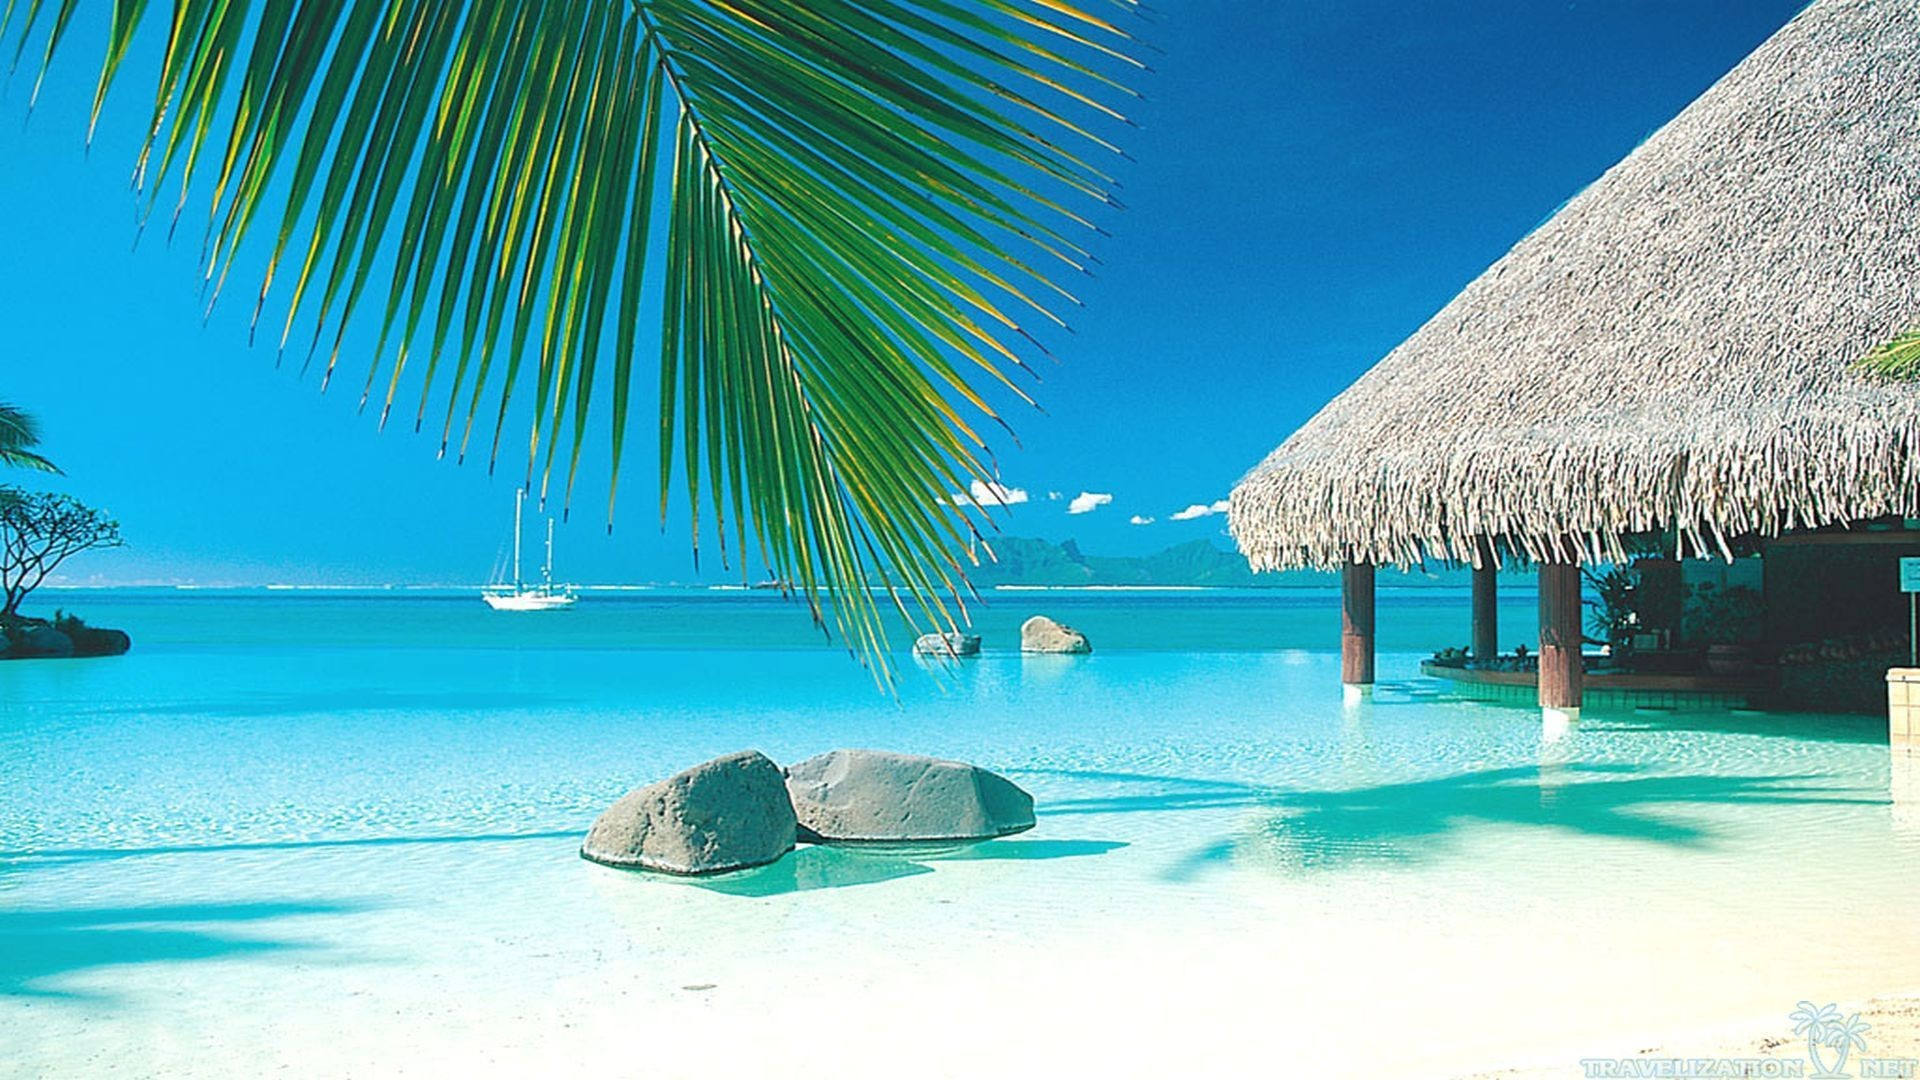 Tropical Beach Screensavers and Wallpaper 67 images 1920x1080